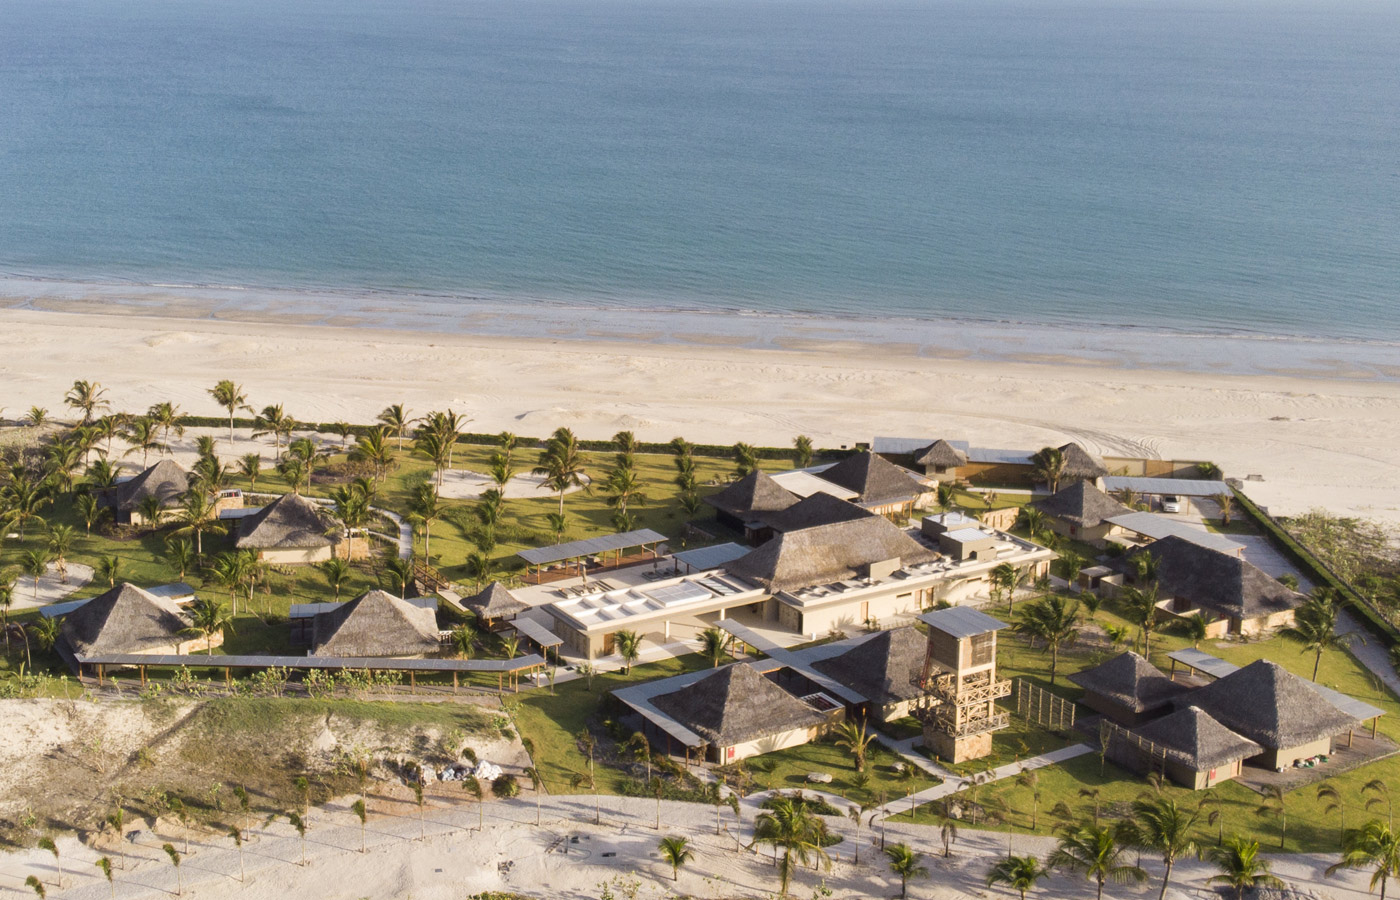 A drone photograph of the luxury hotel Casana in Prea, Brazil